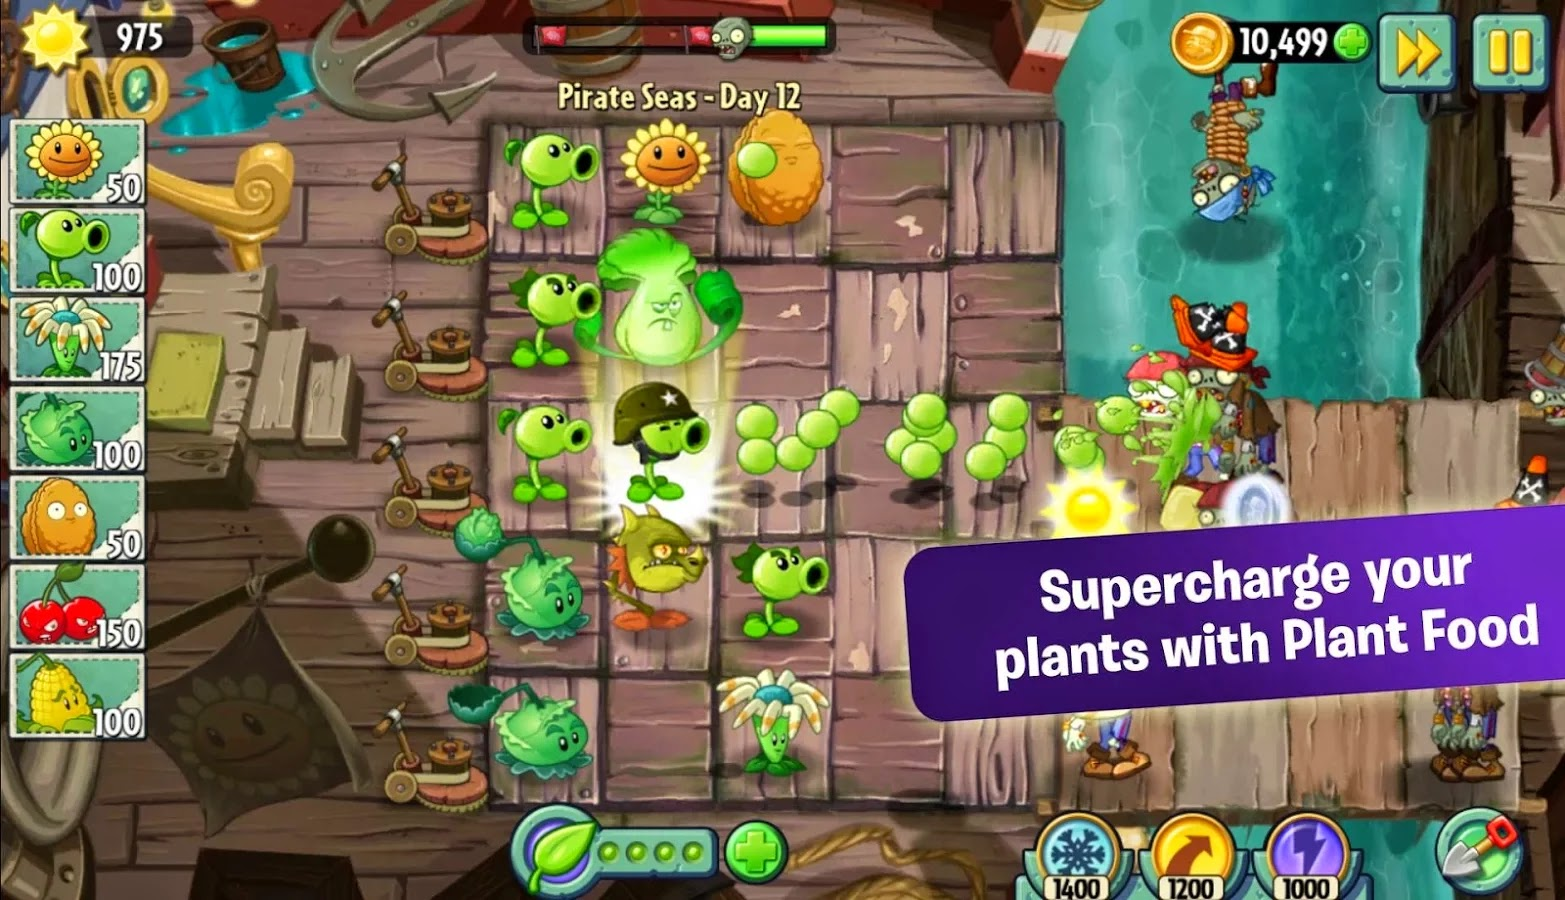 Plants vs. Zombies 2 Mod v2.5.1 Apk